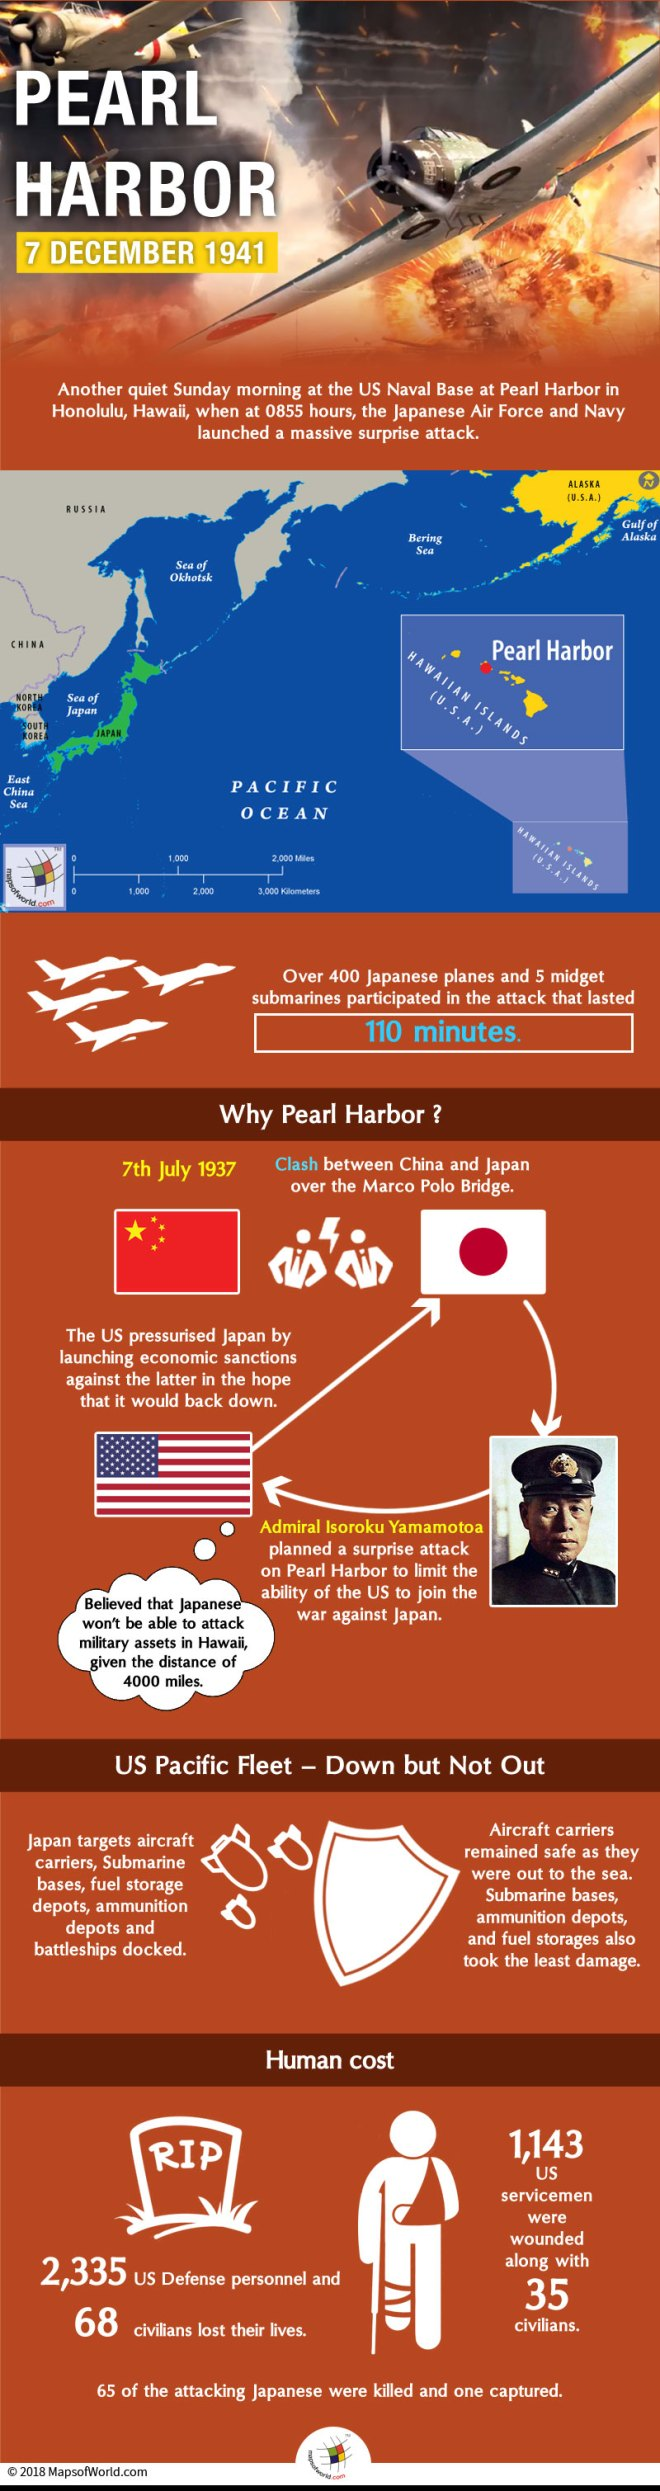 Over 400 Japanese planes and 5 midget submarines participated in the attack that lasted 110 minutes